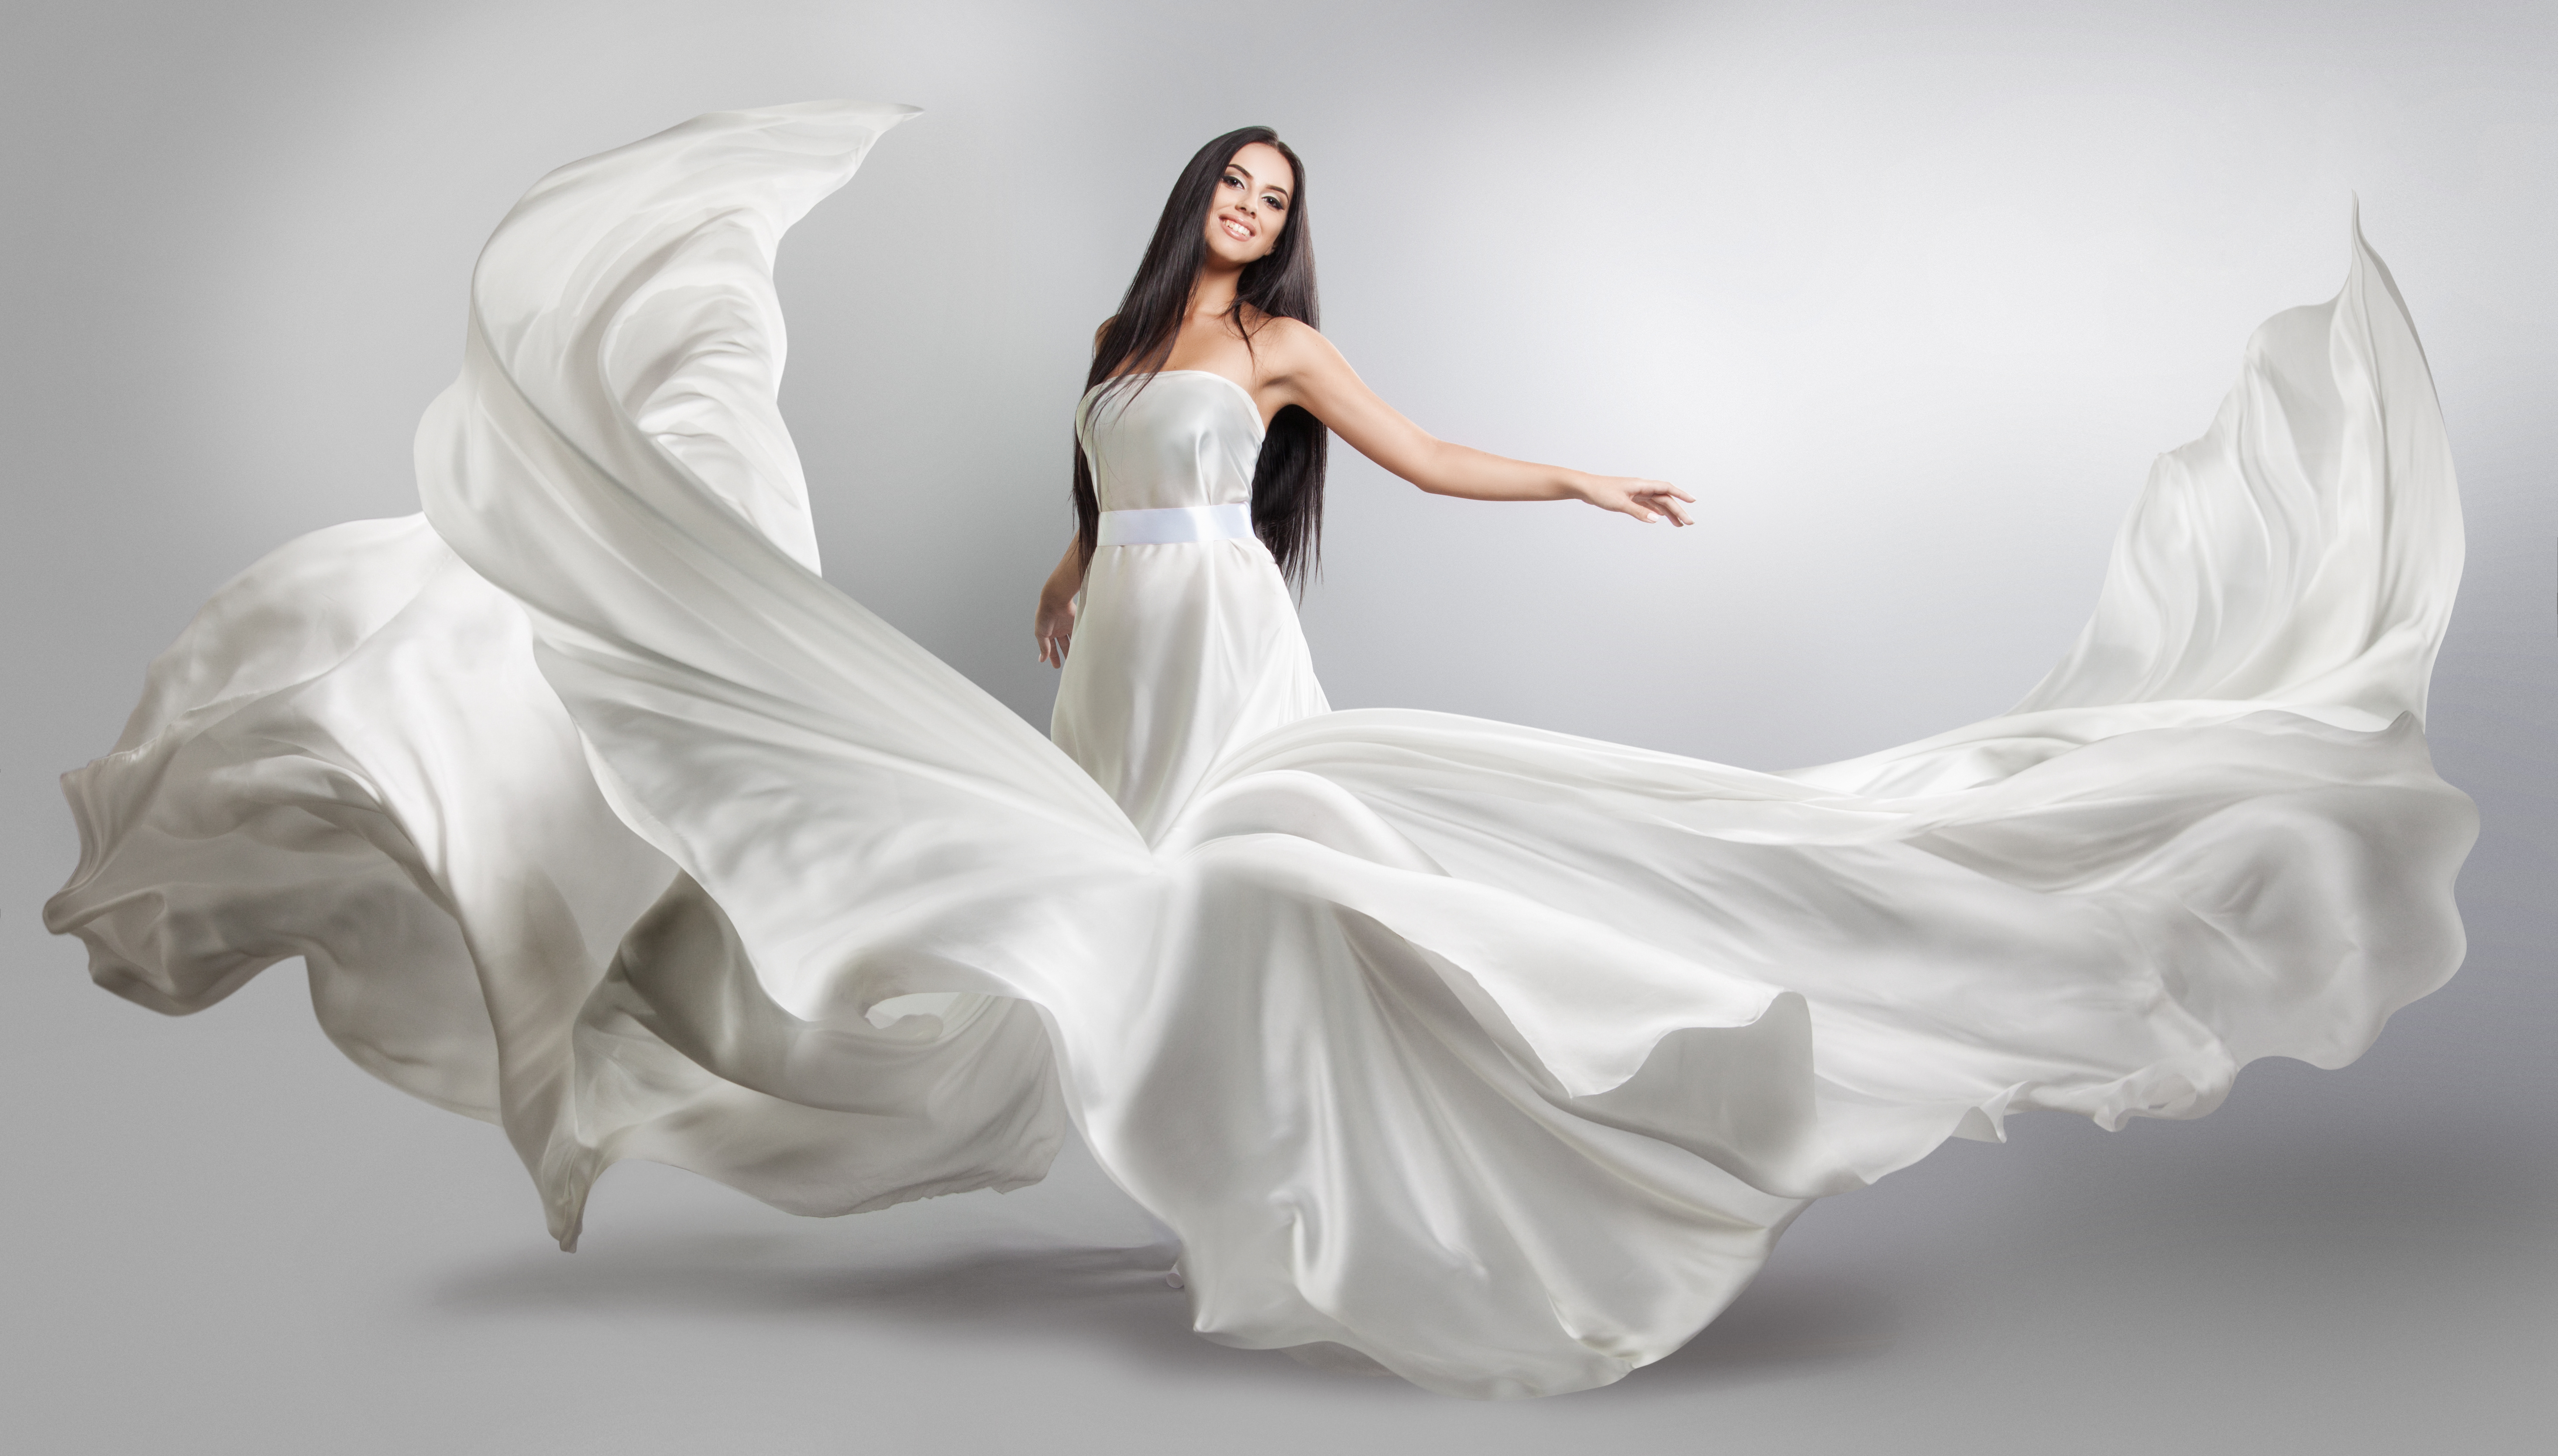 Beautiful woman Wedding dress Art photo Stock Photo